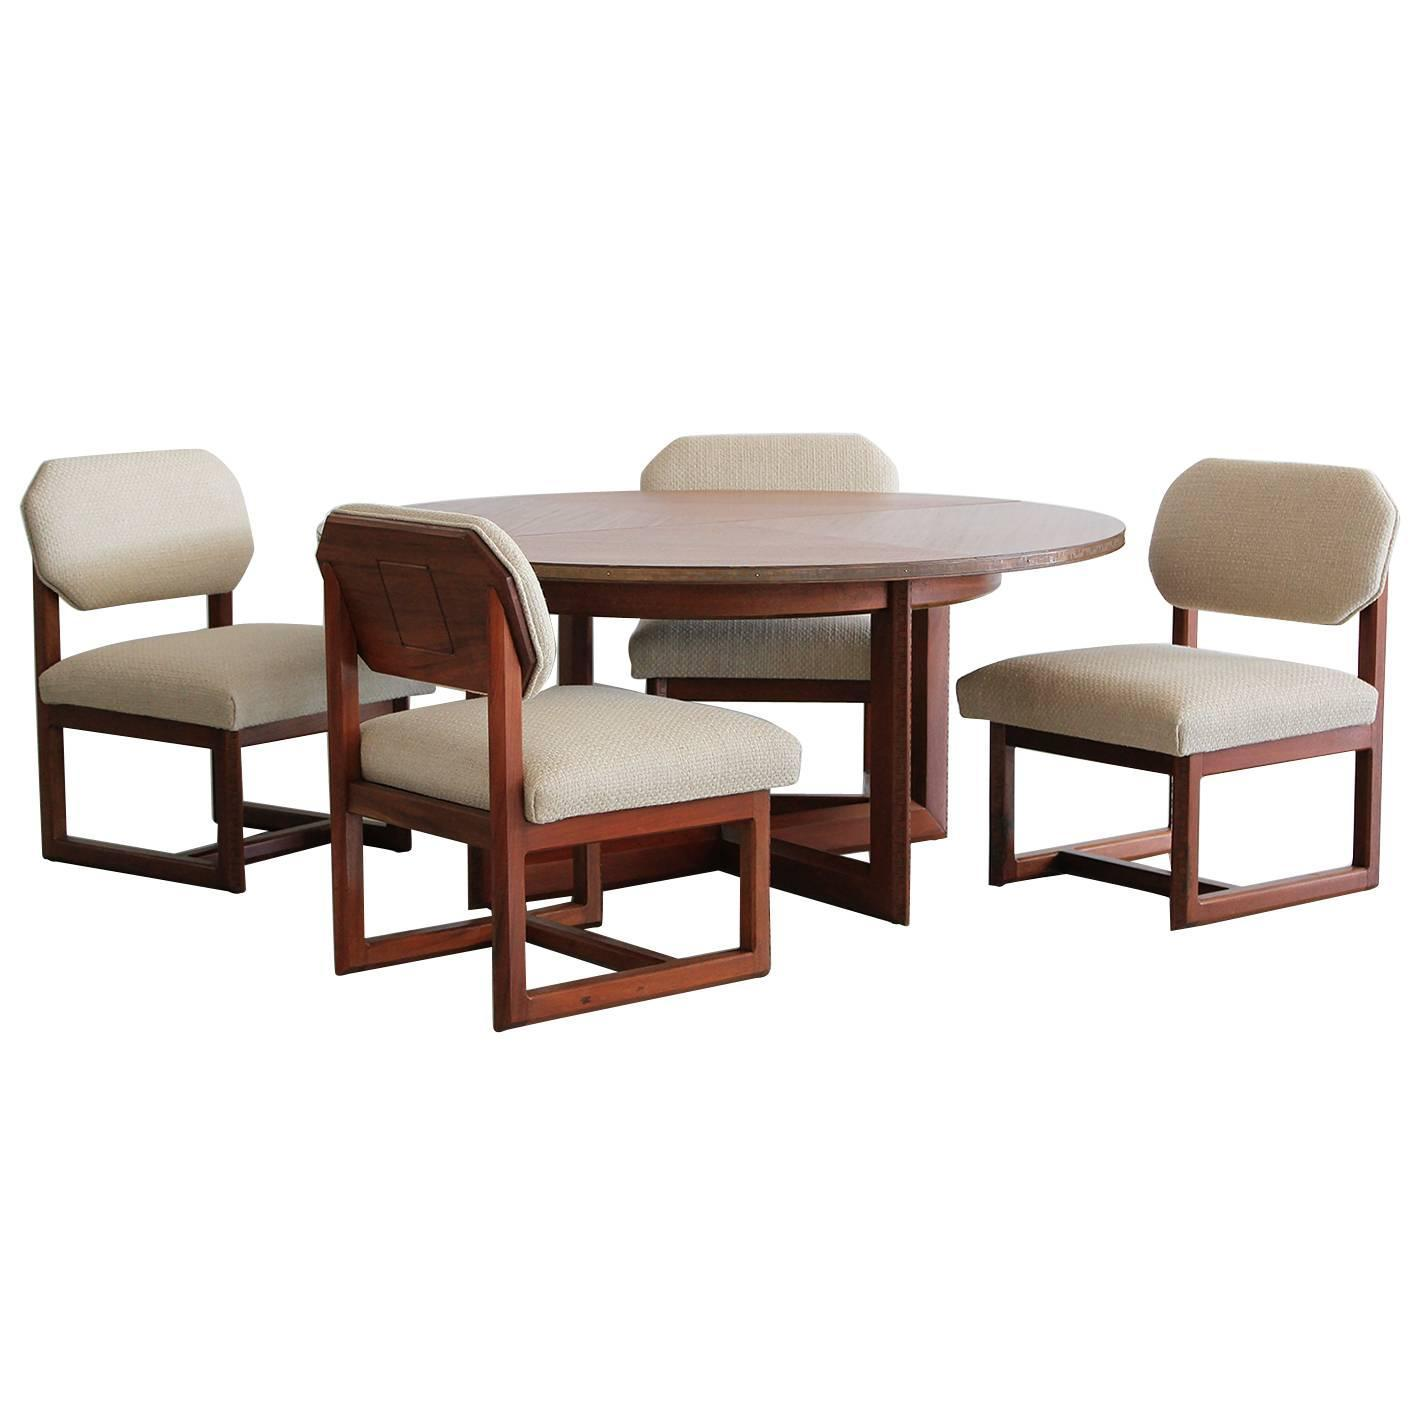 Table And Chair For Sale: Frank Lloyd Wright Game Table And Chairs For Sale At 1stdibs